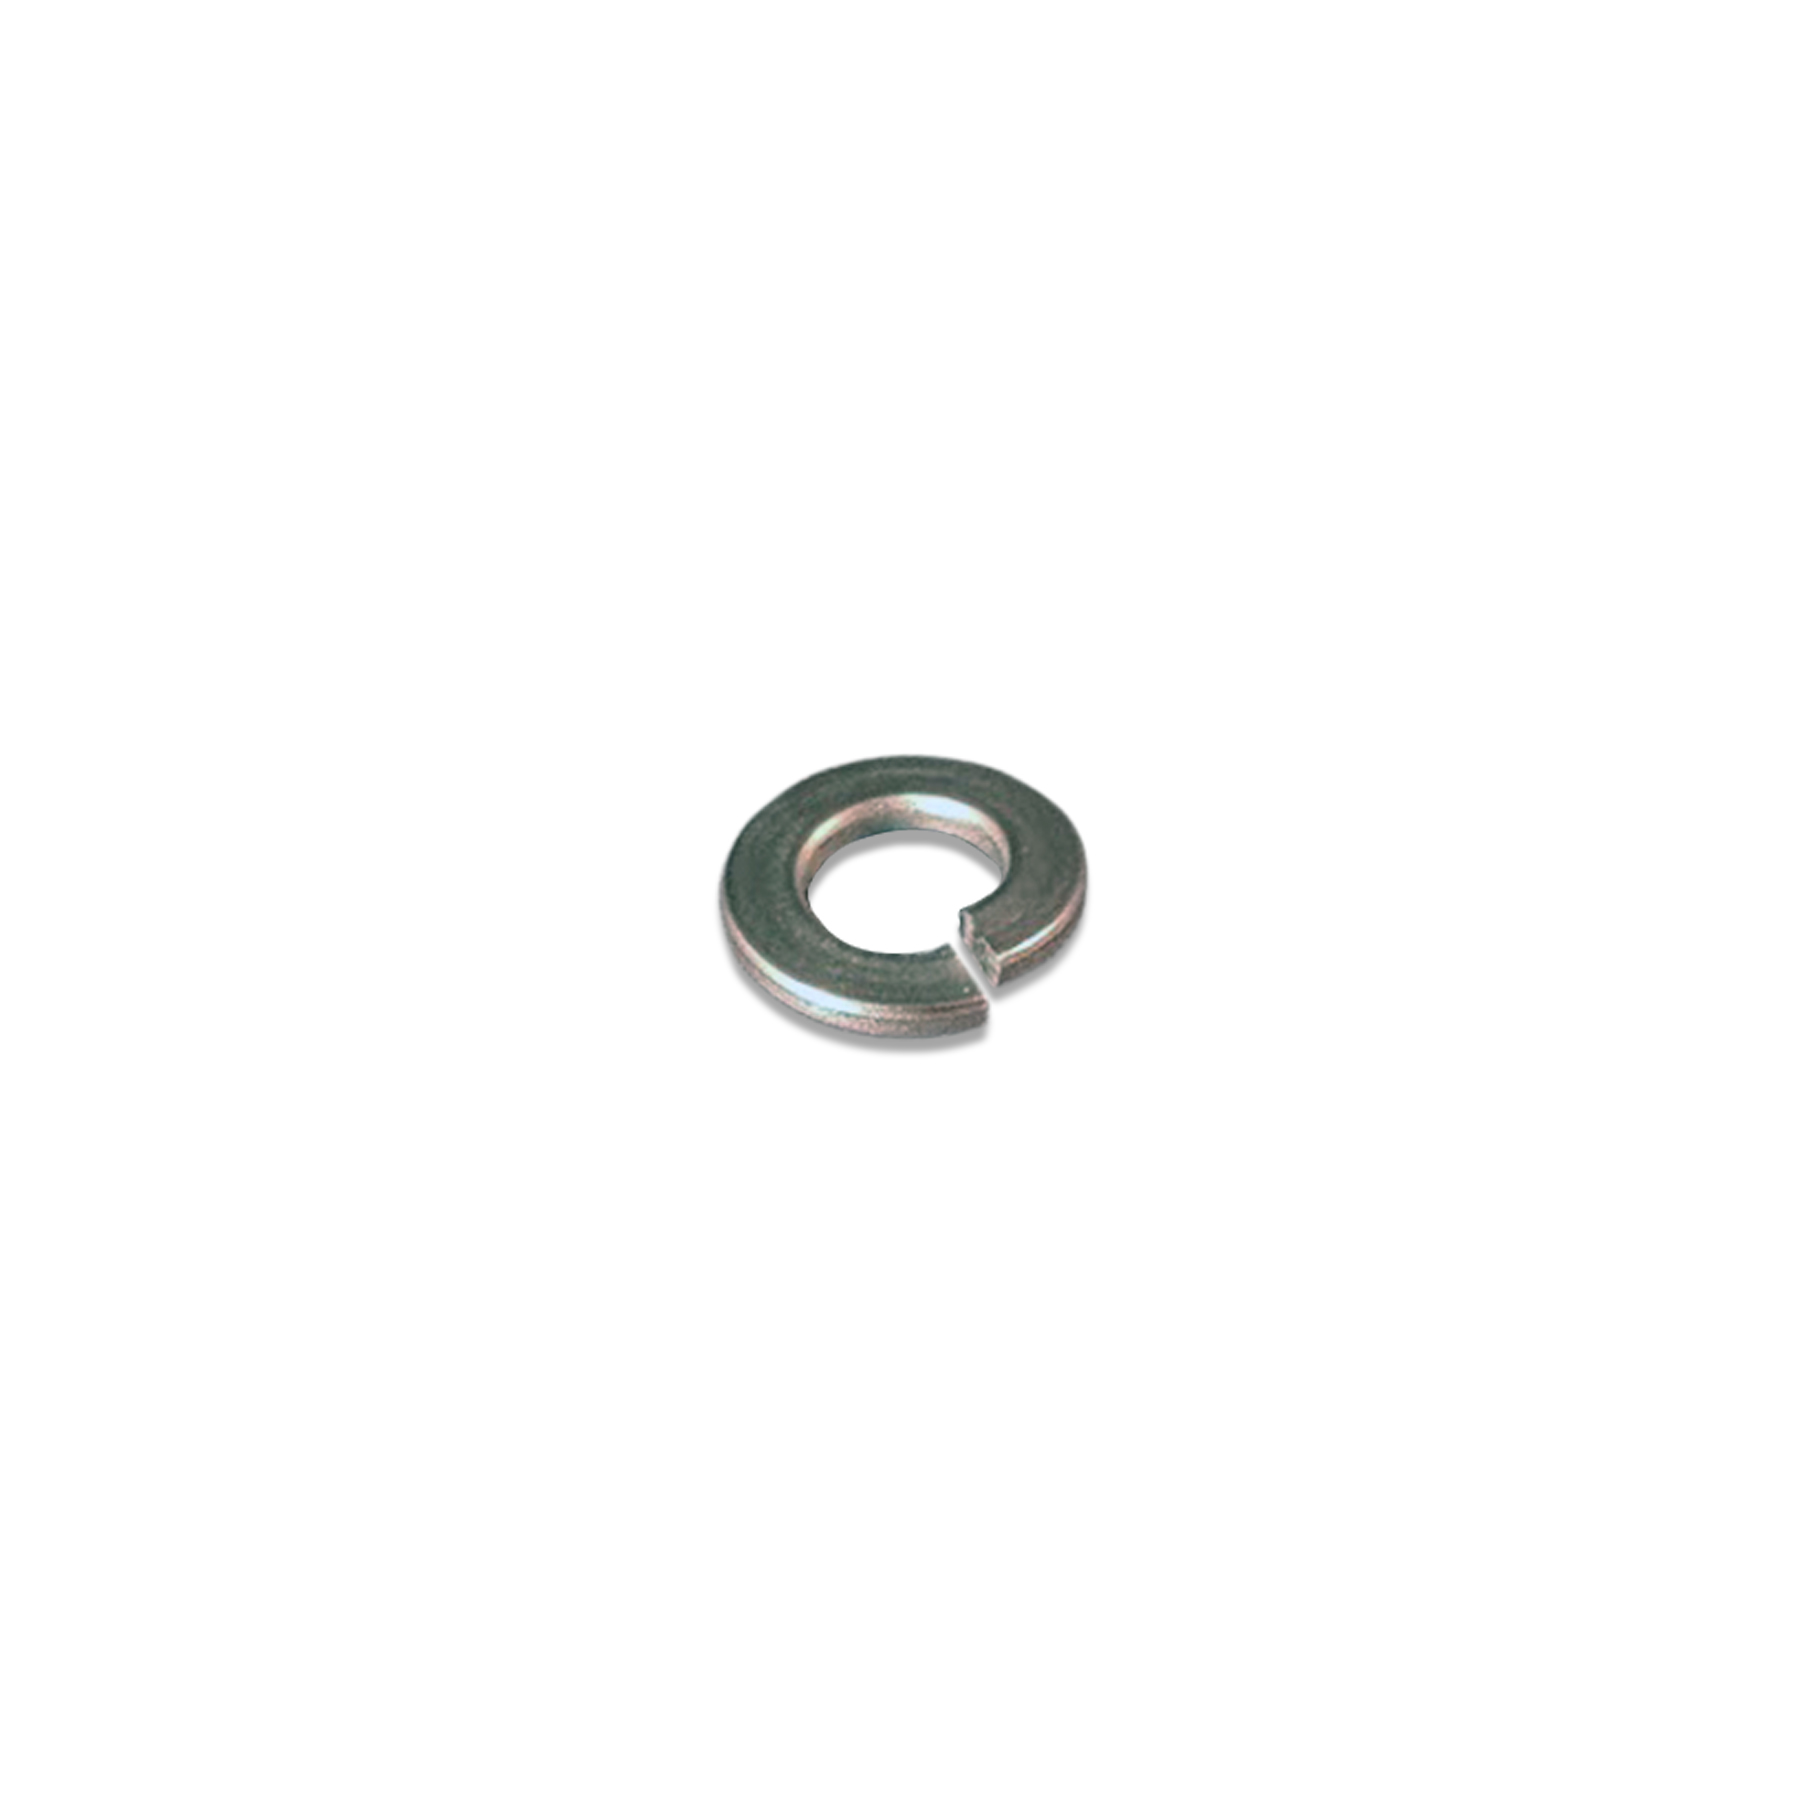 CONS Lock Washer, 1/4 in.